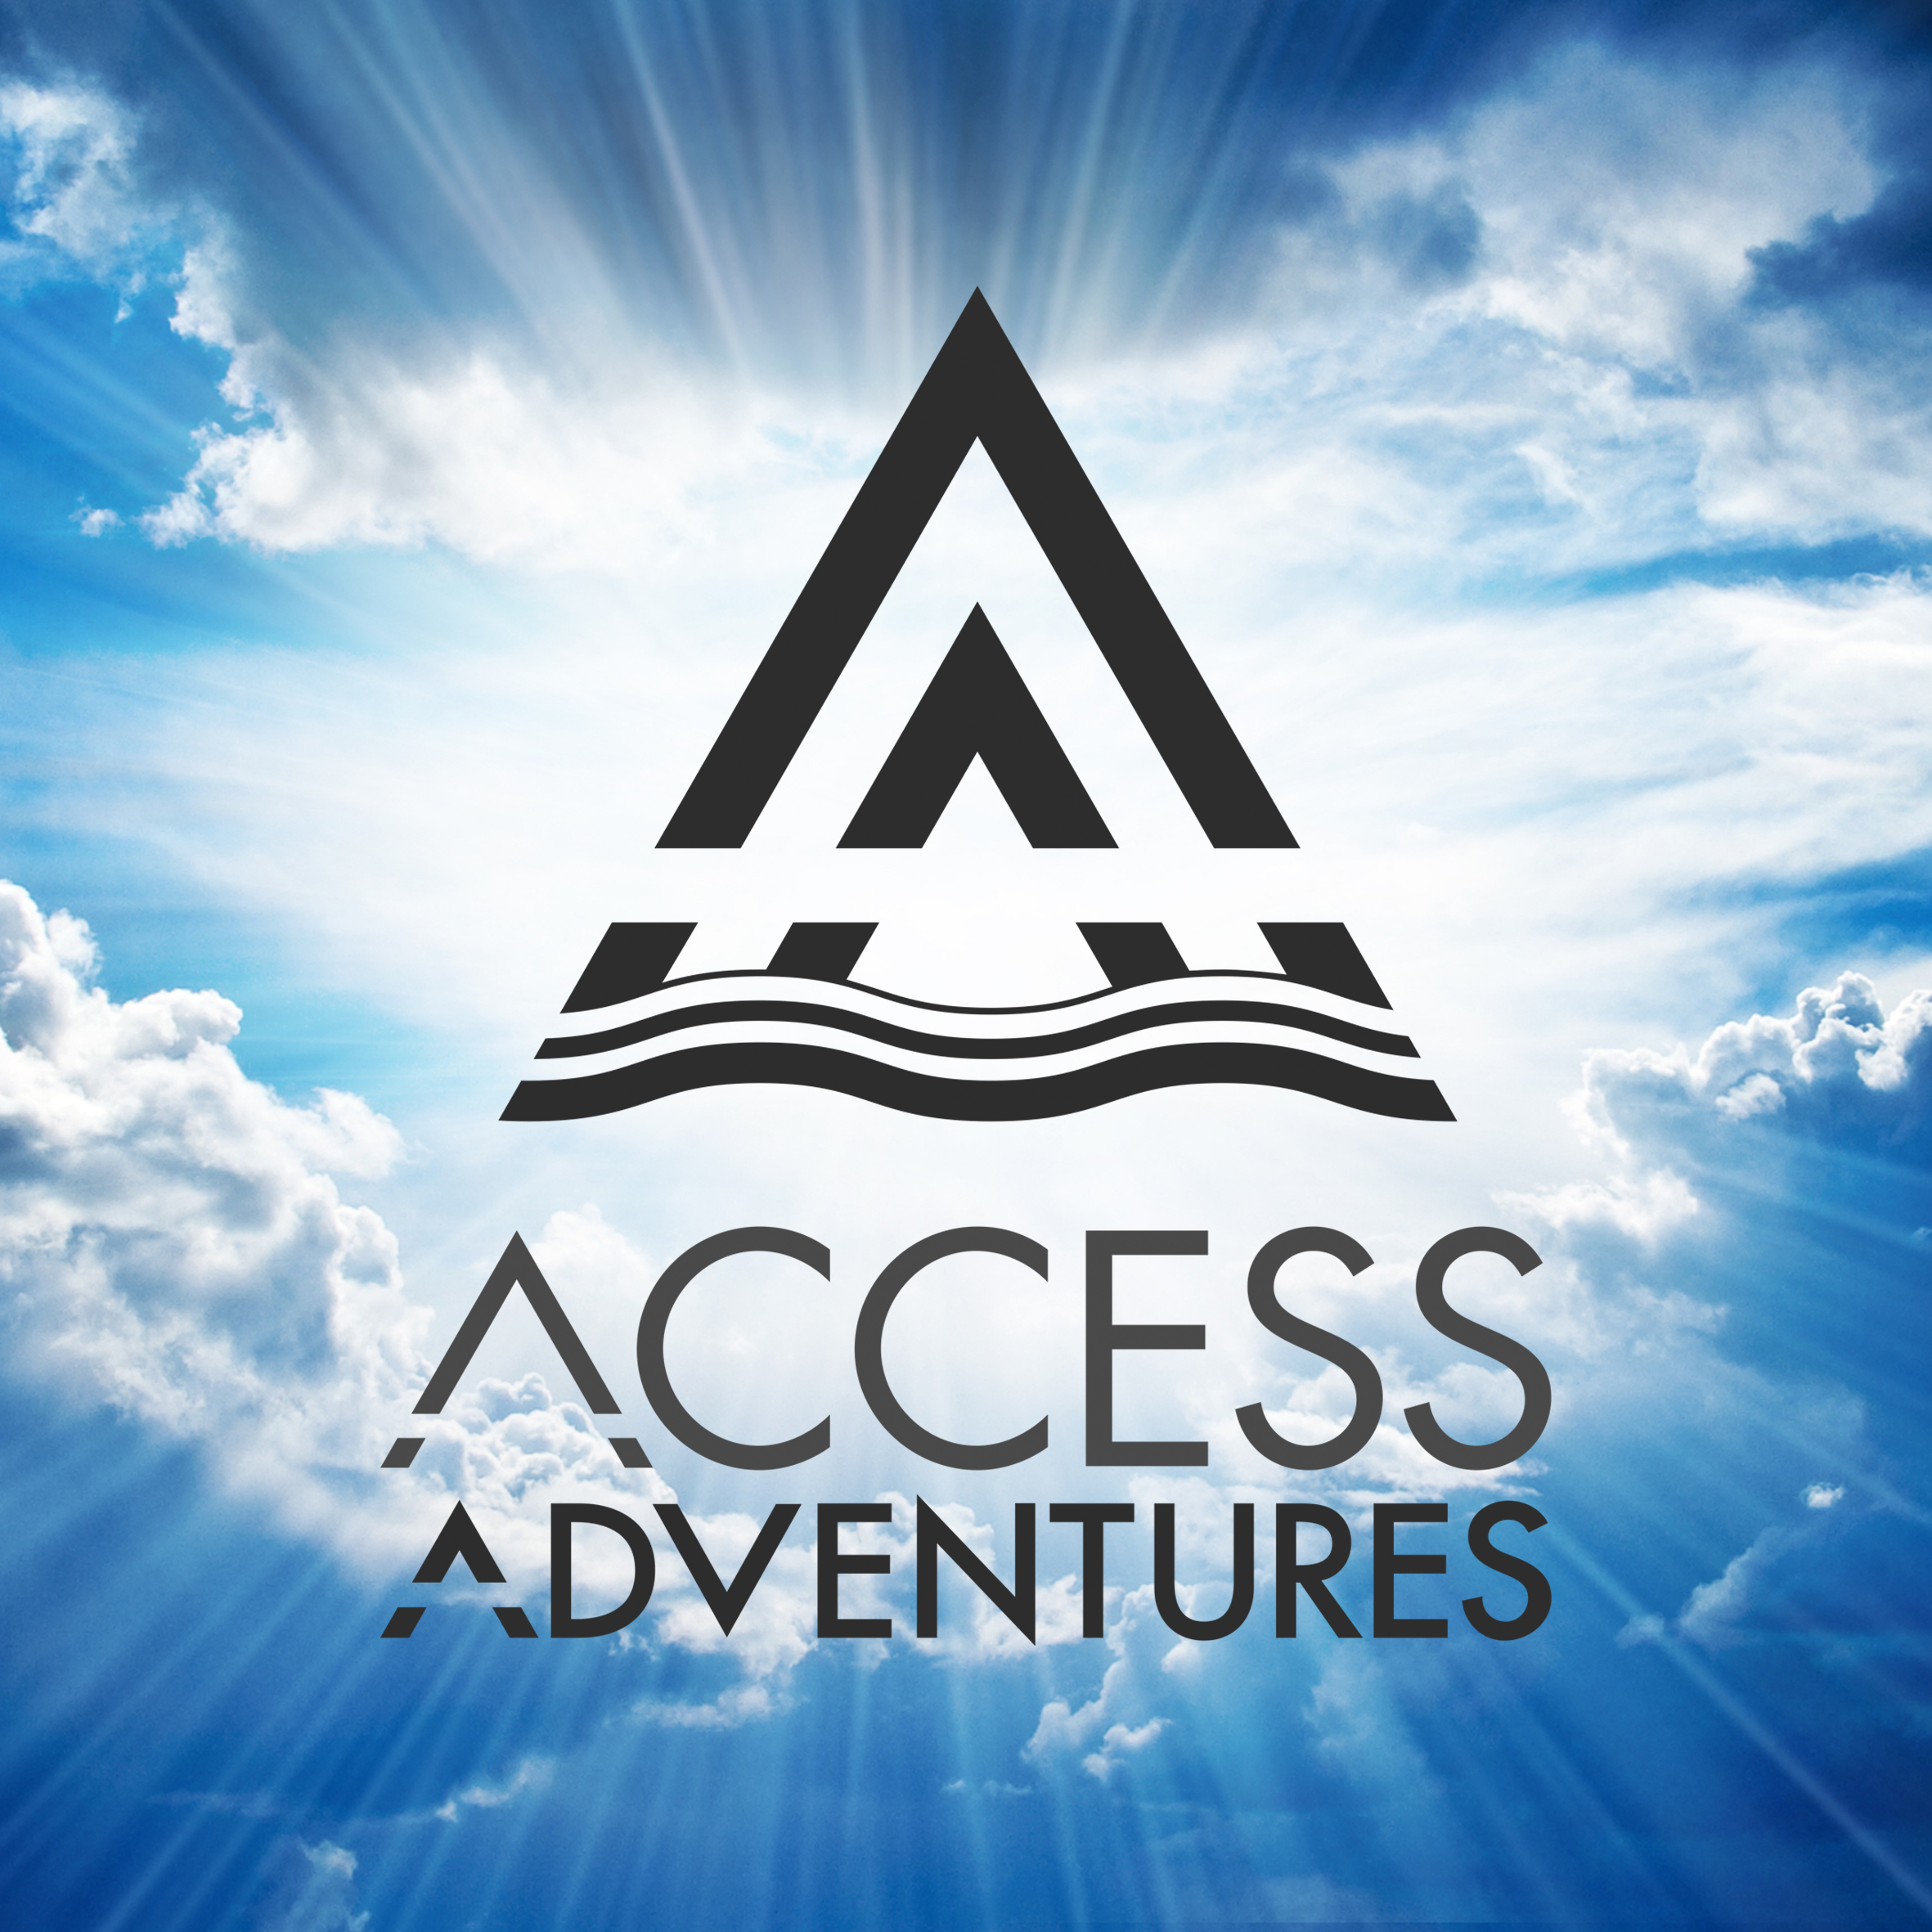 Copy of Copy of Access adventures